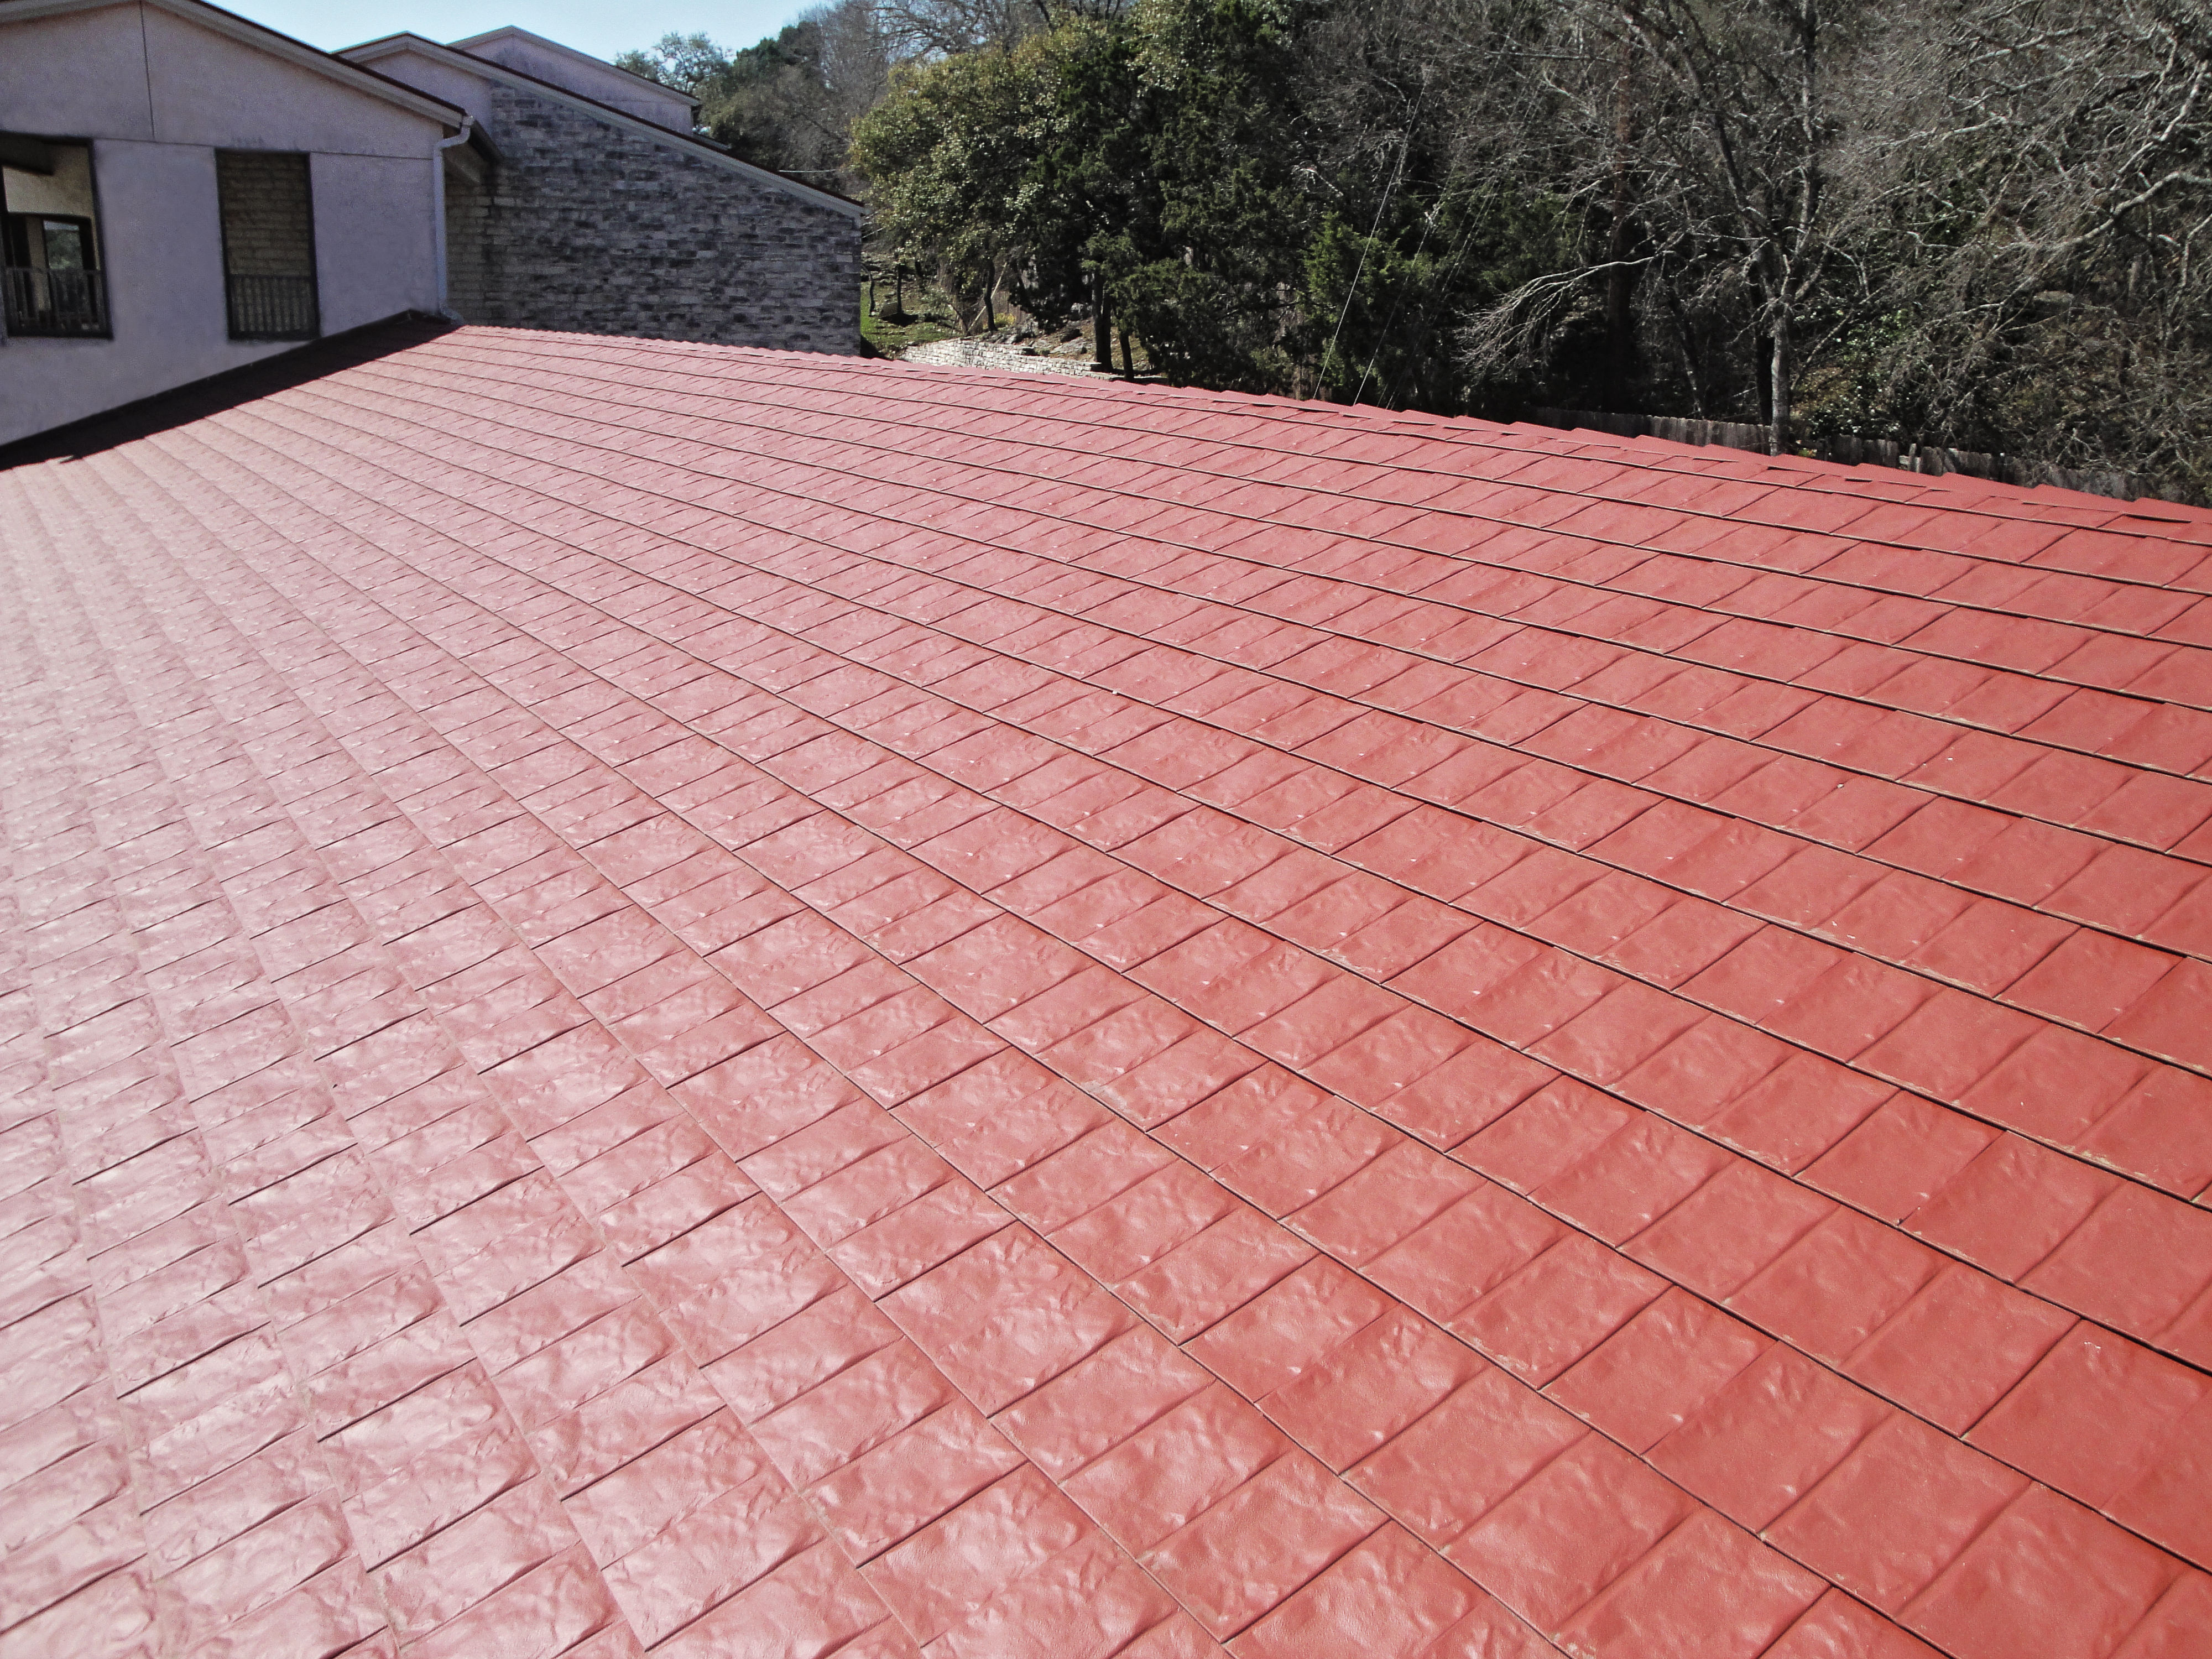 TAMKO MetalWorks StoneCrest Slate - Sequoia Red - Palisades - 03